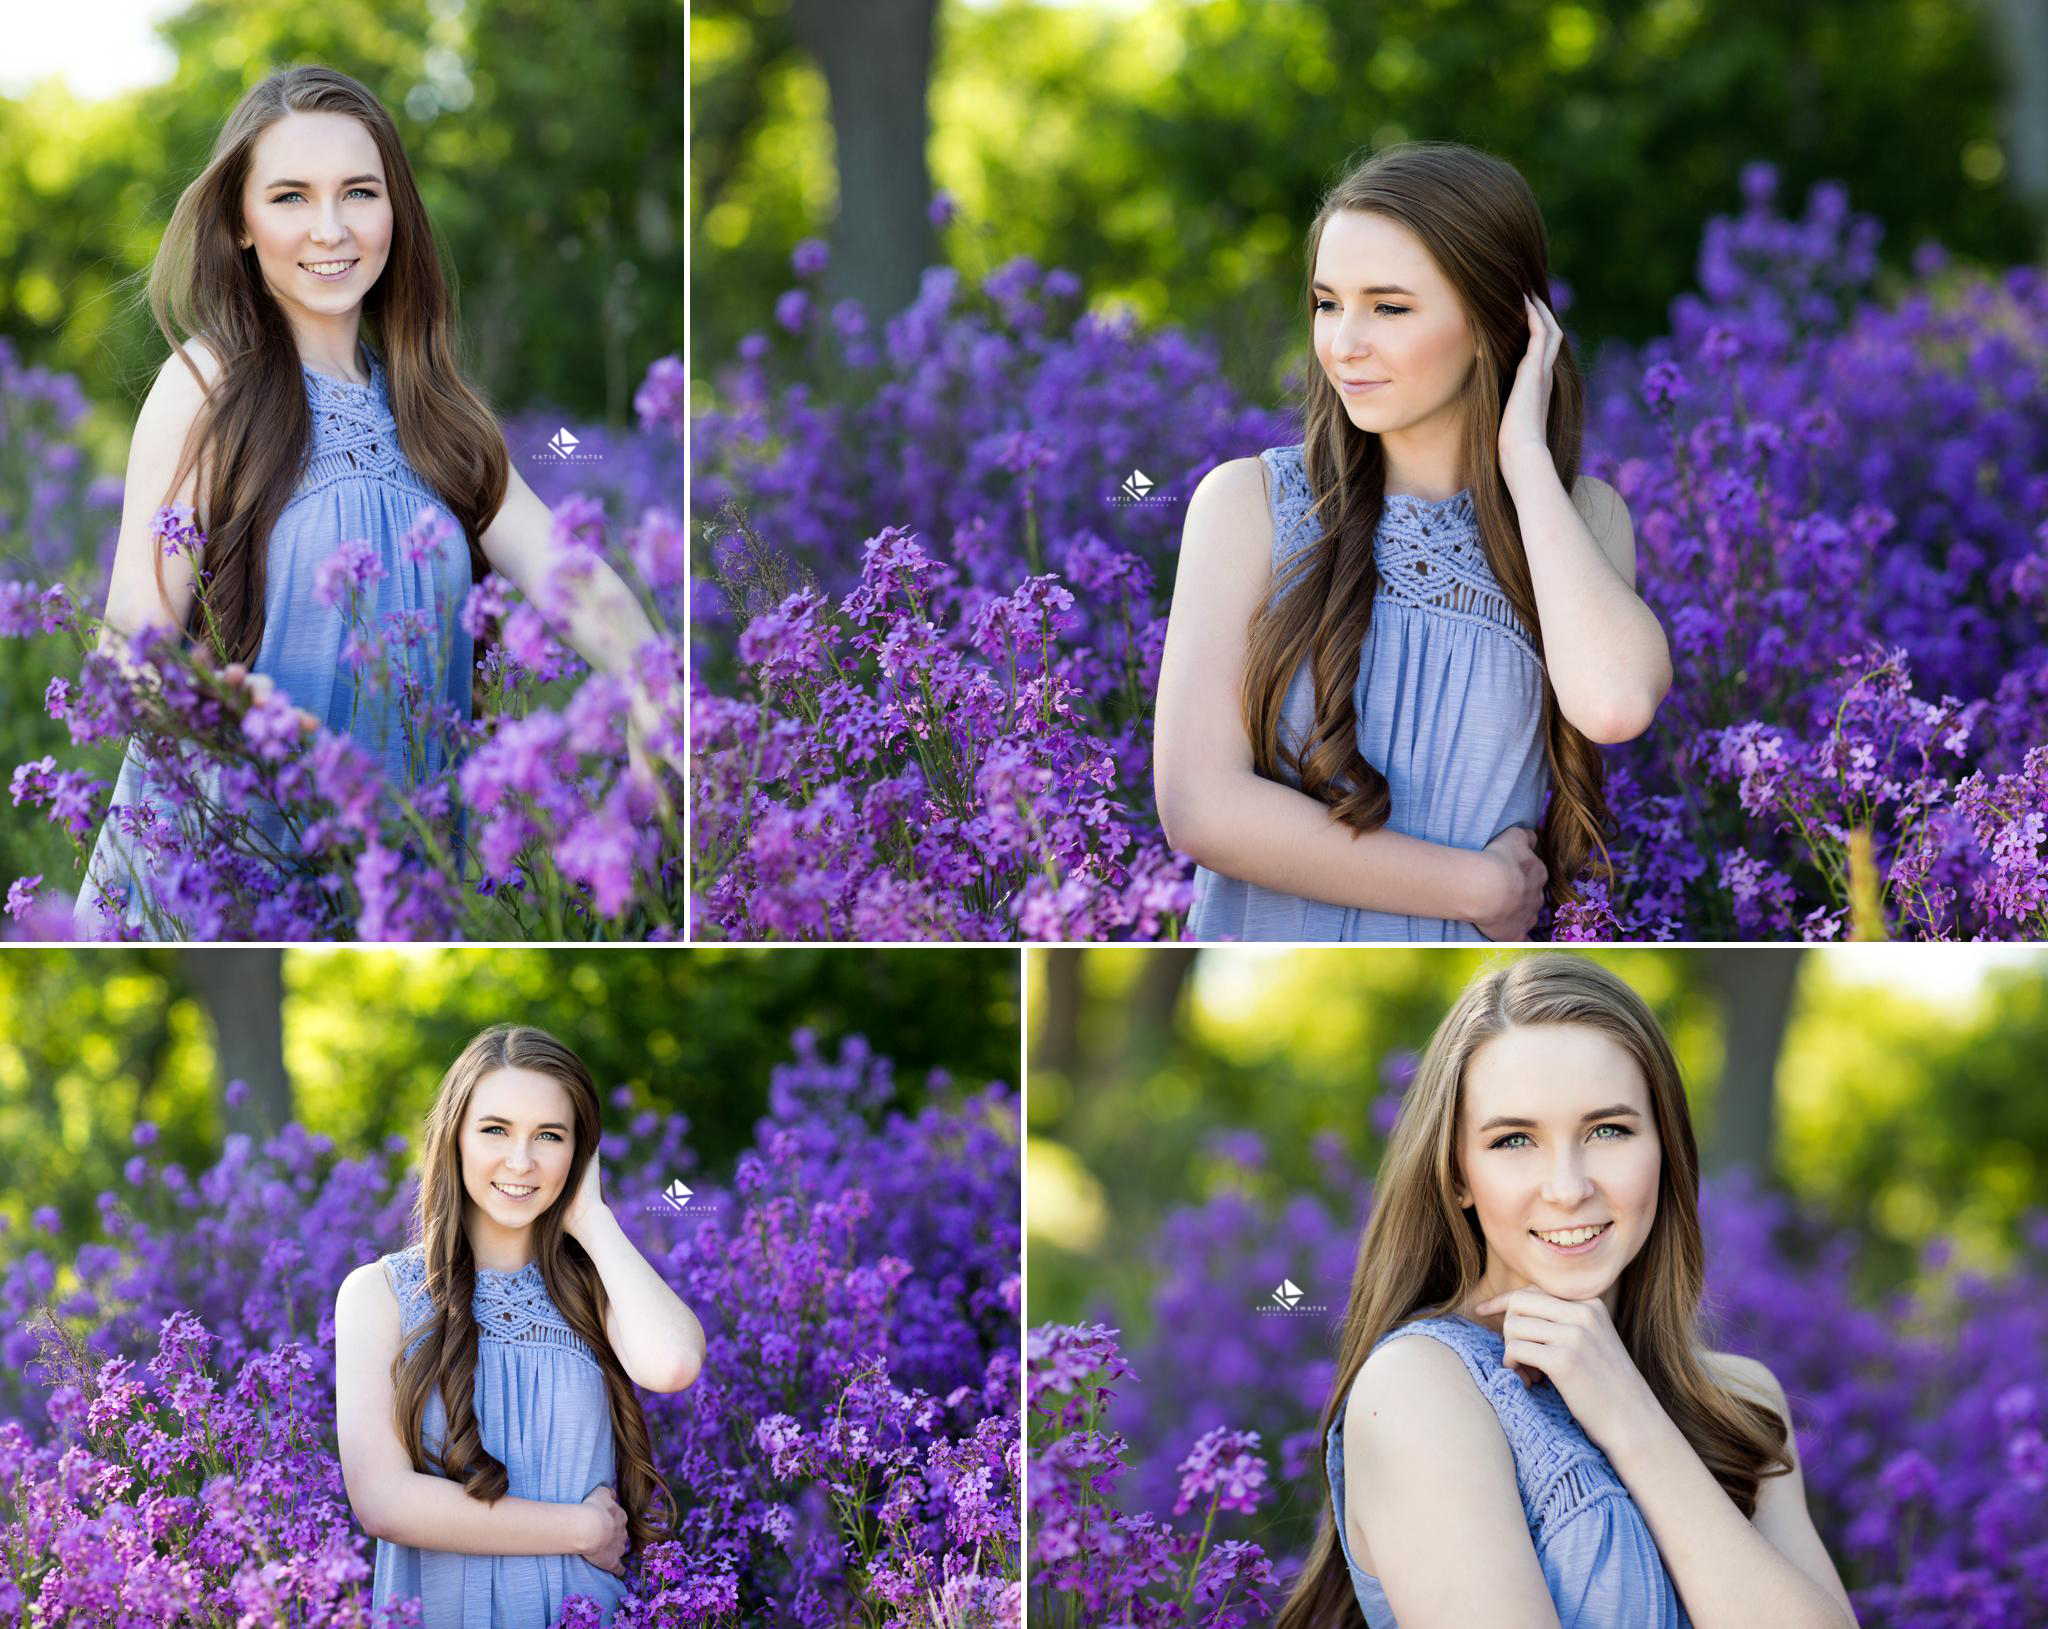 brunette senior girl with long hair in a light blue dress standing in a field of bright purple flowers